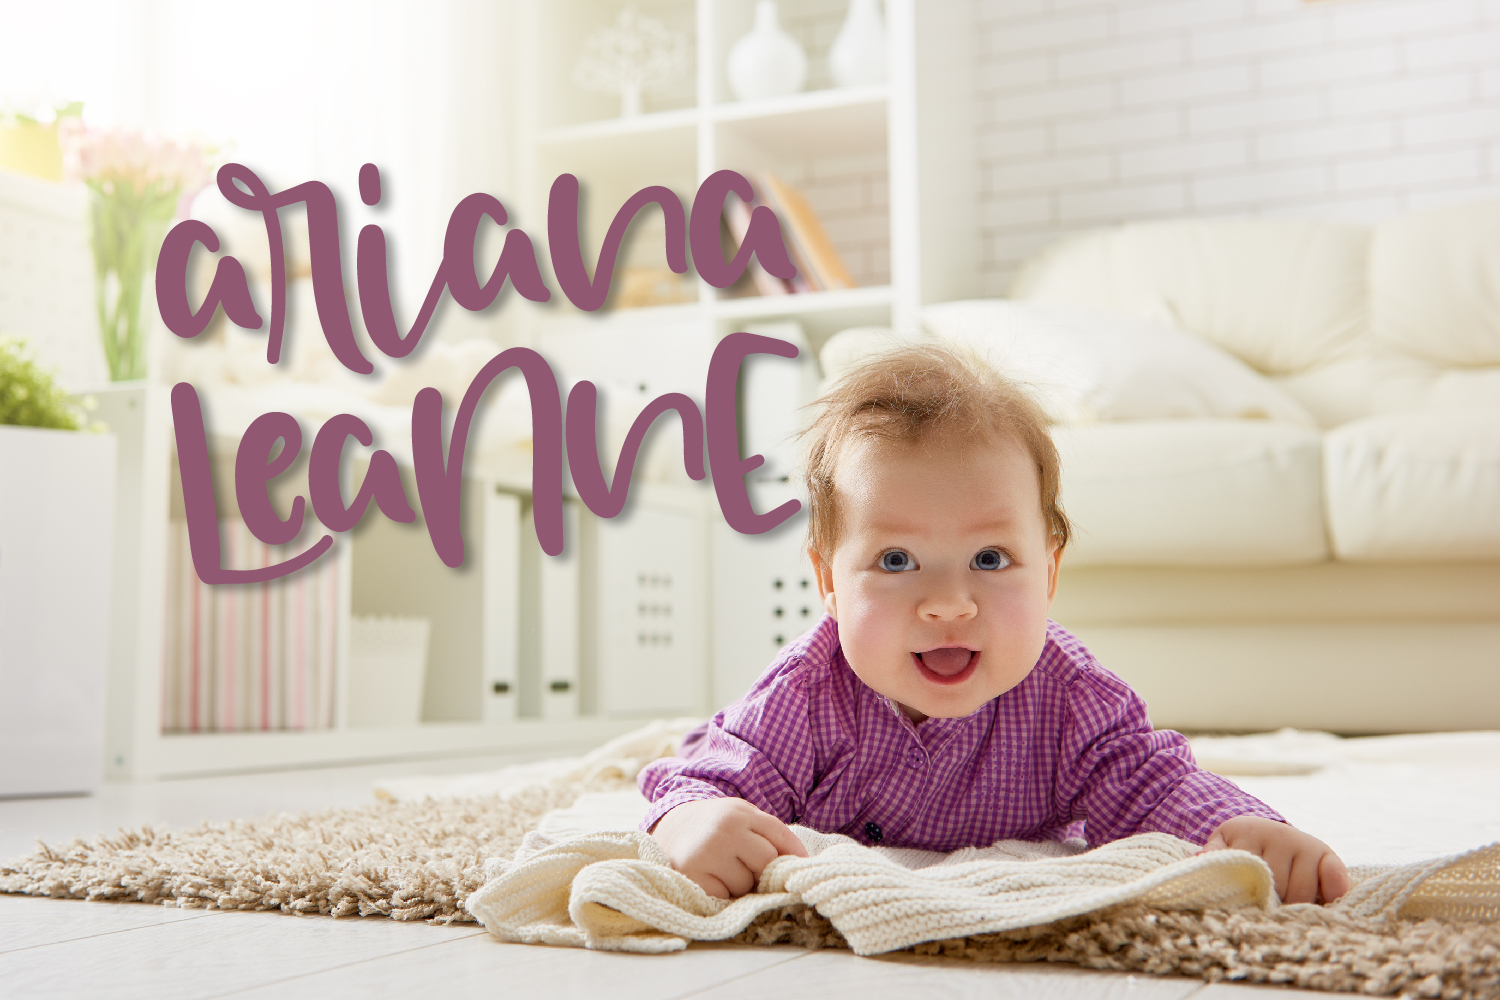 Ariana Leanne - A Hand Lettered Font example image 9